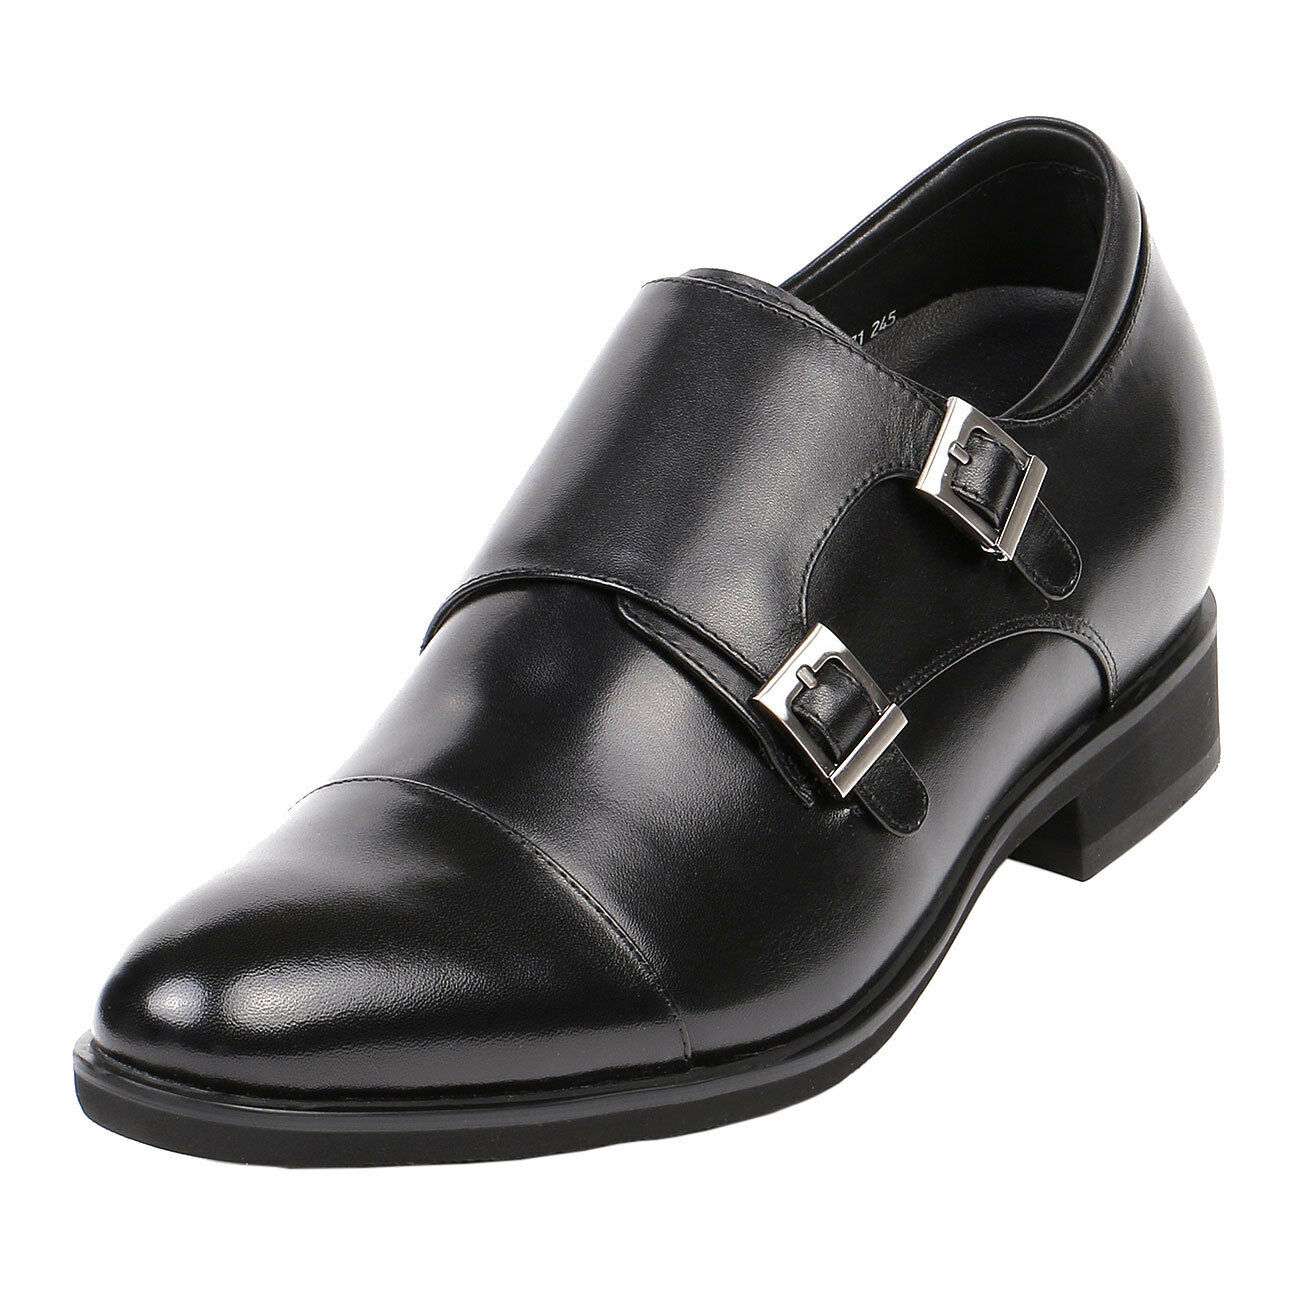 il più alla moda Monk Strap nero Leather Dress Dress Dress scarpe Cap Toe 3  Taller Short Uomo Height, GKD71  acquisto limitato